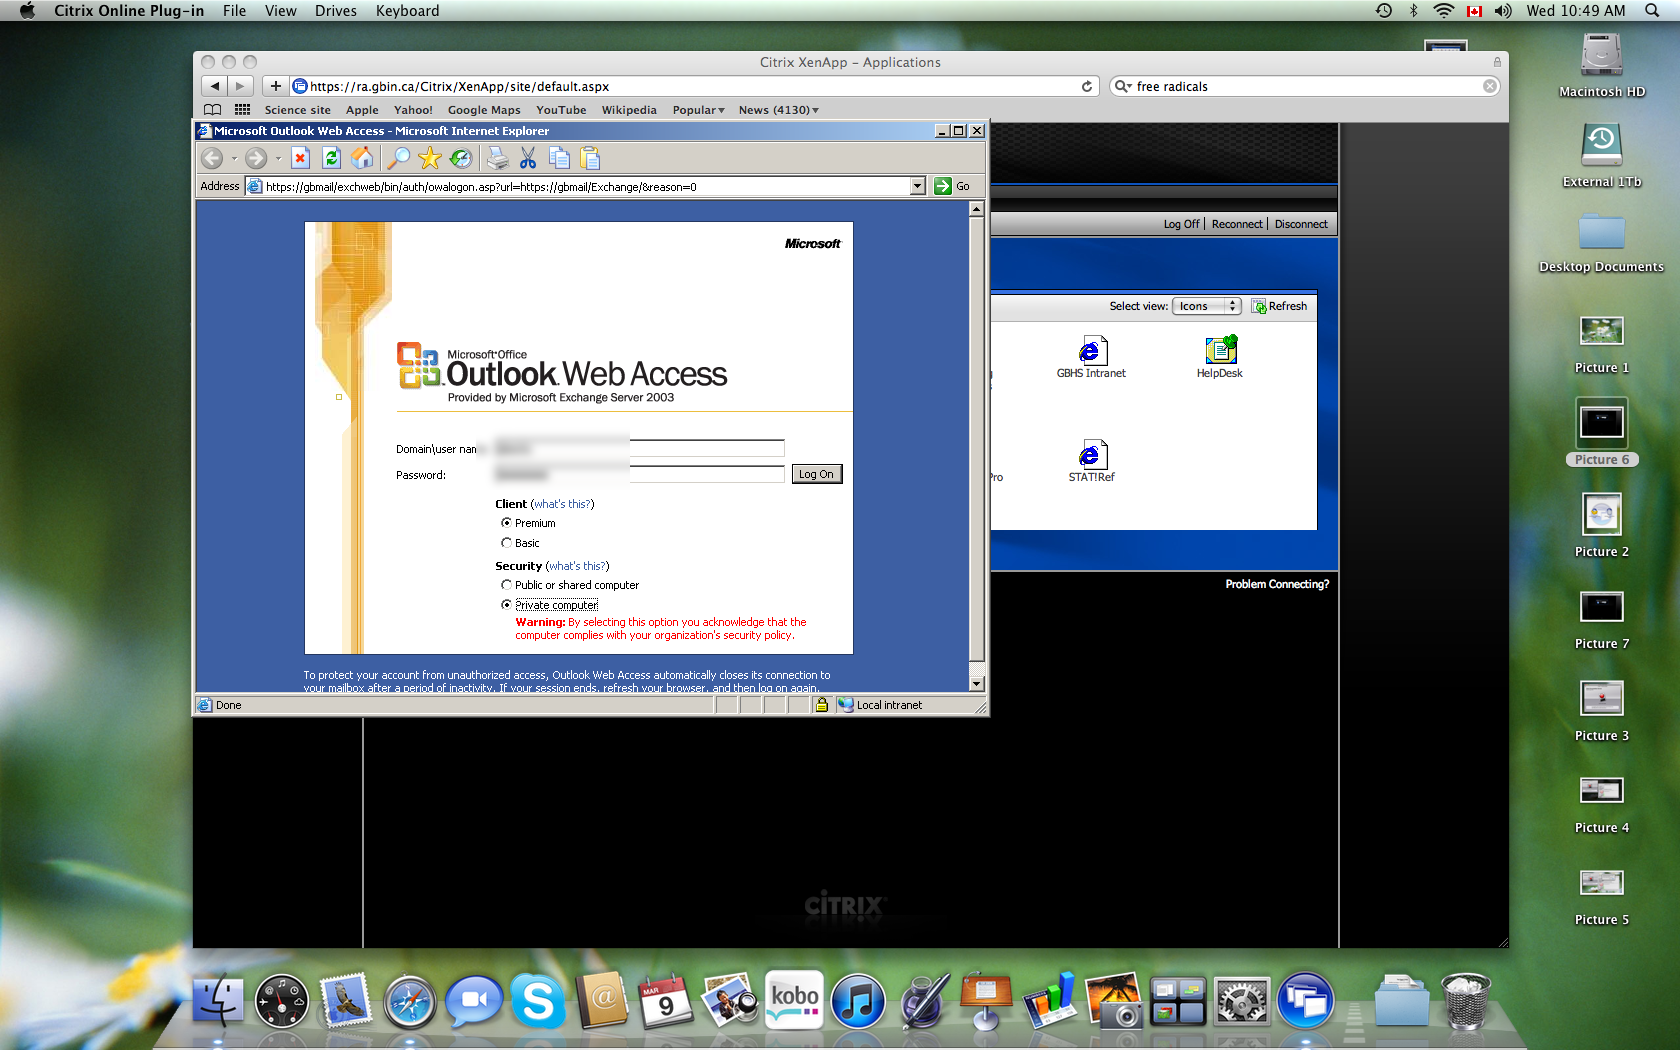 Email Access Using Citrix on Mac OS 10 6